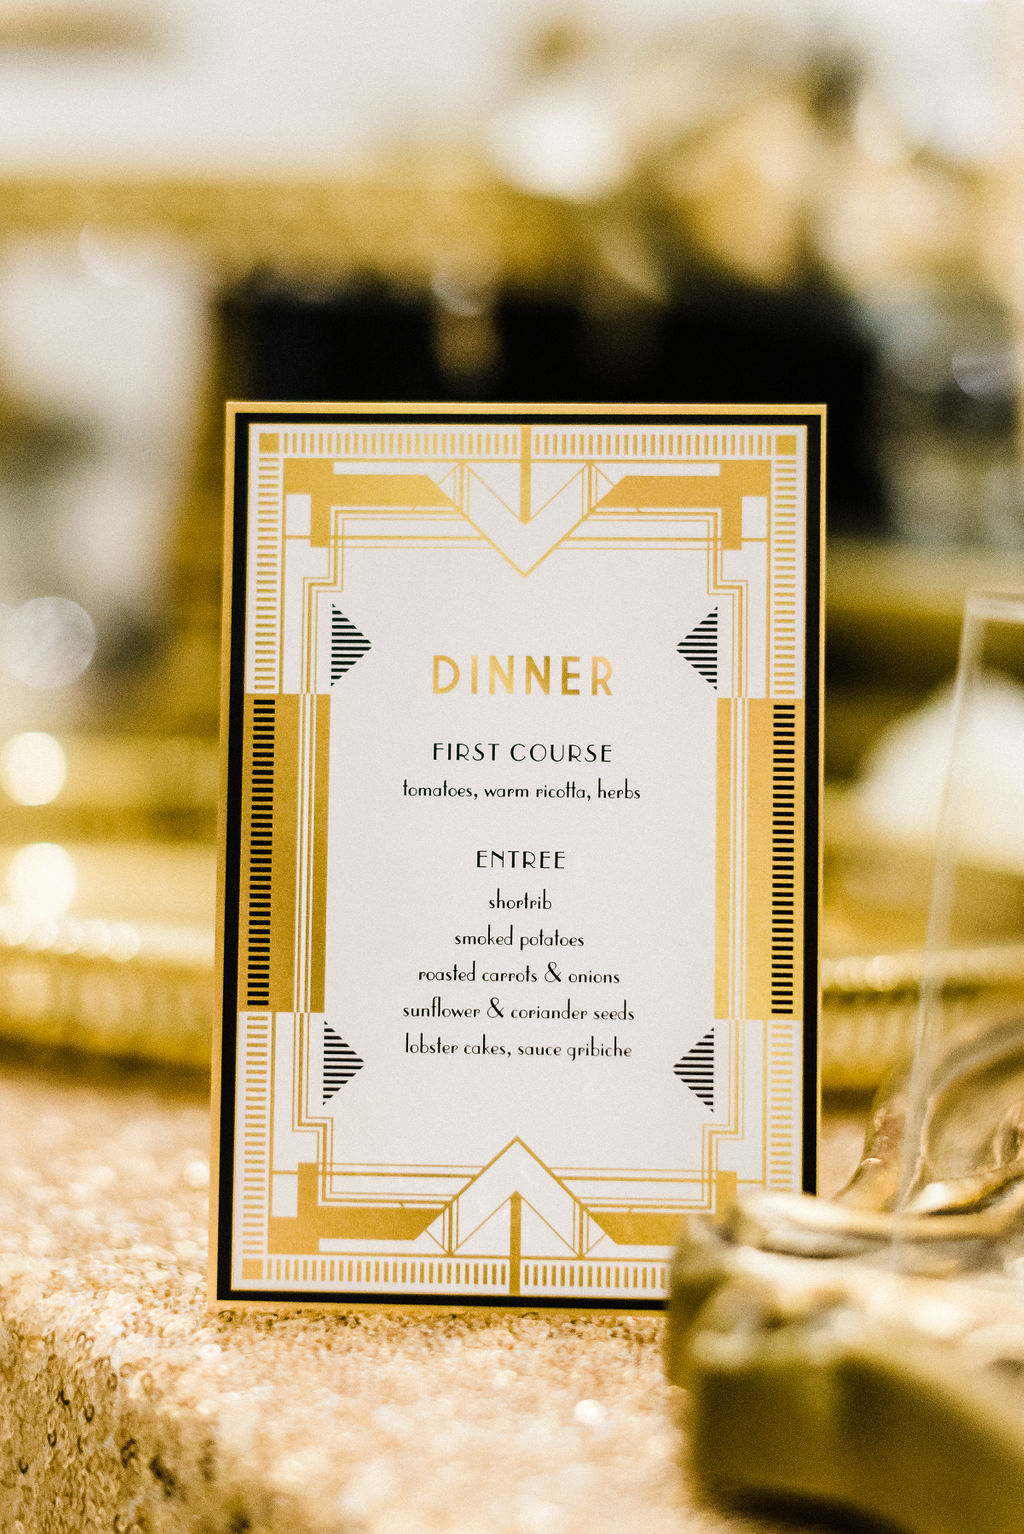 Tyler Anderson's wedding dinner menu at The Goodwin Hotel - Pearl Weddings & Events